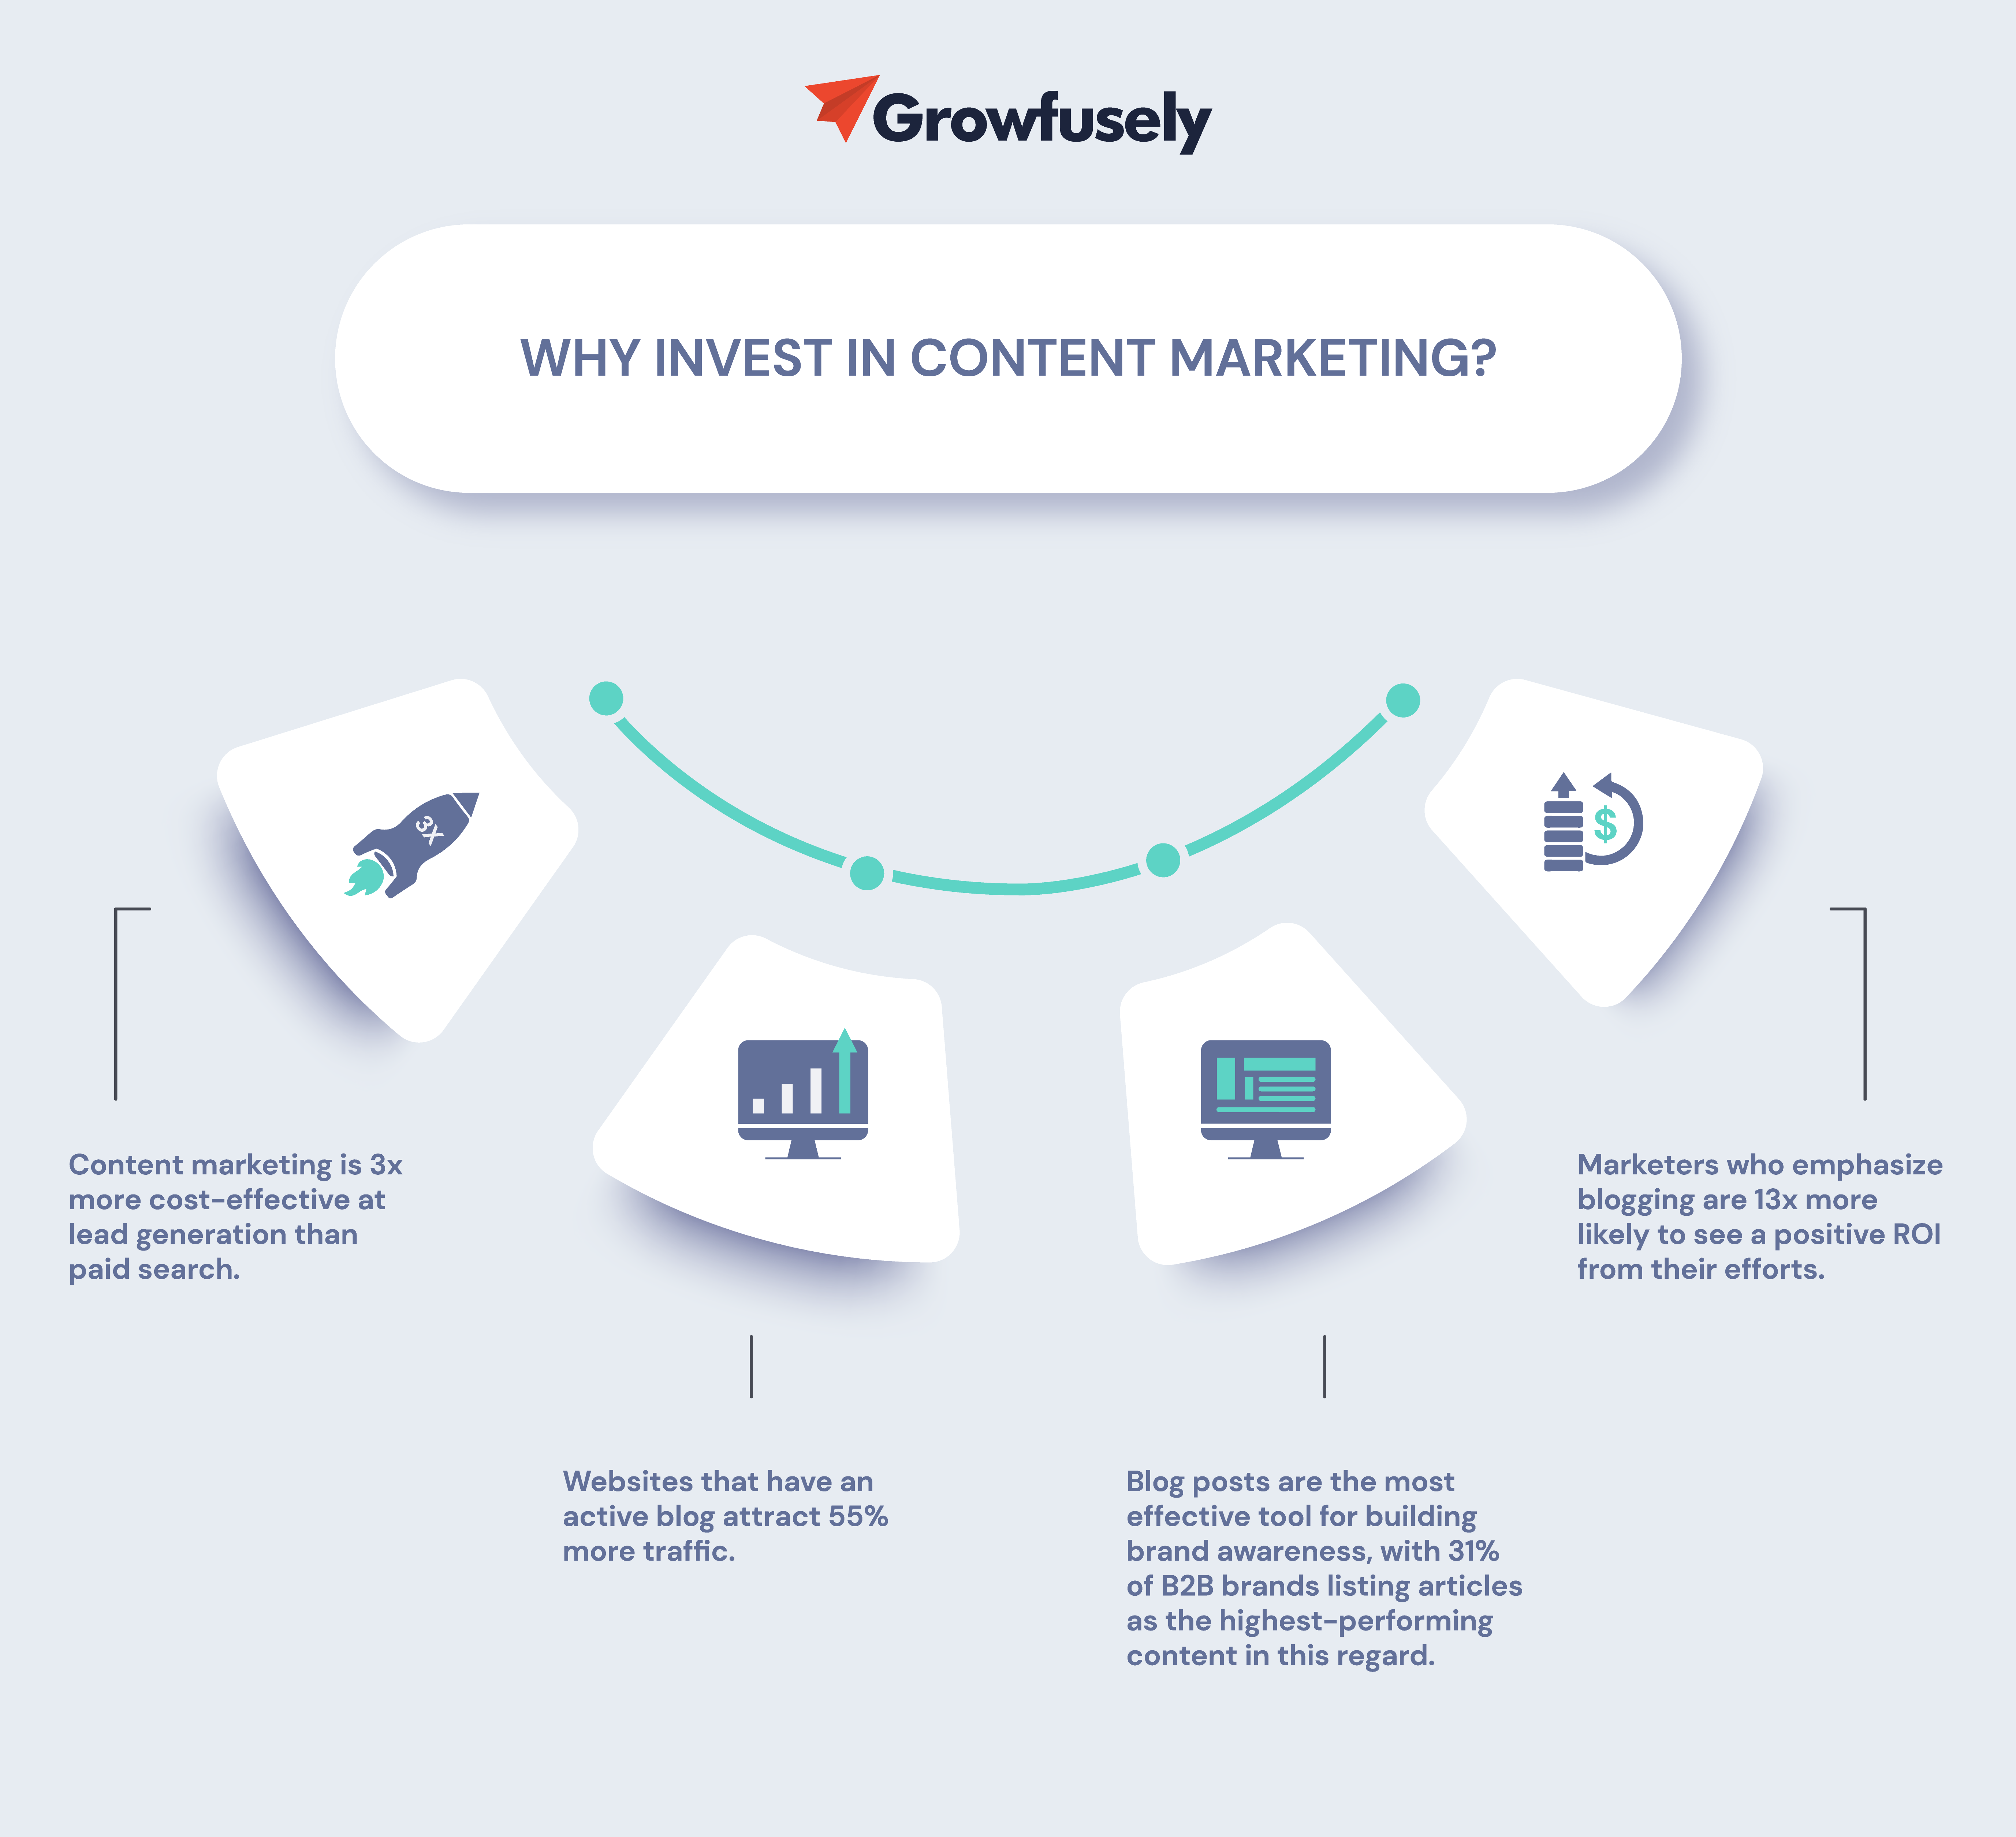 Why invest in content marketing